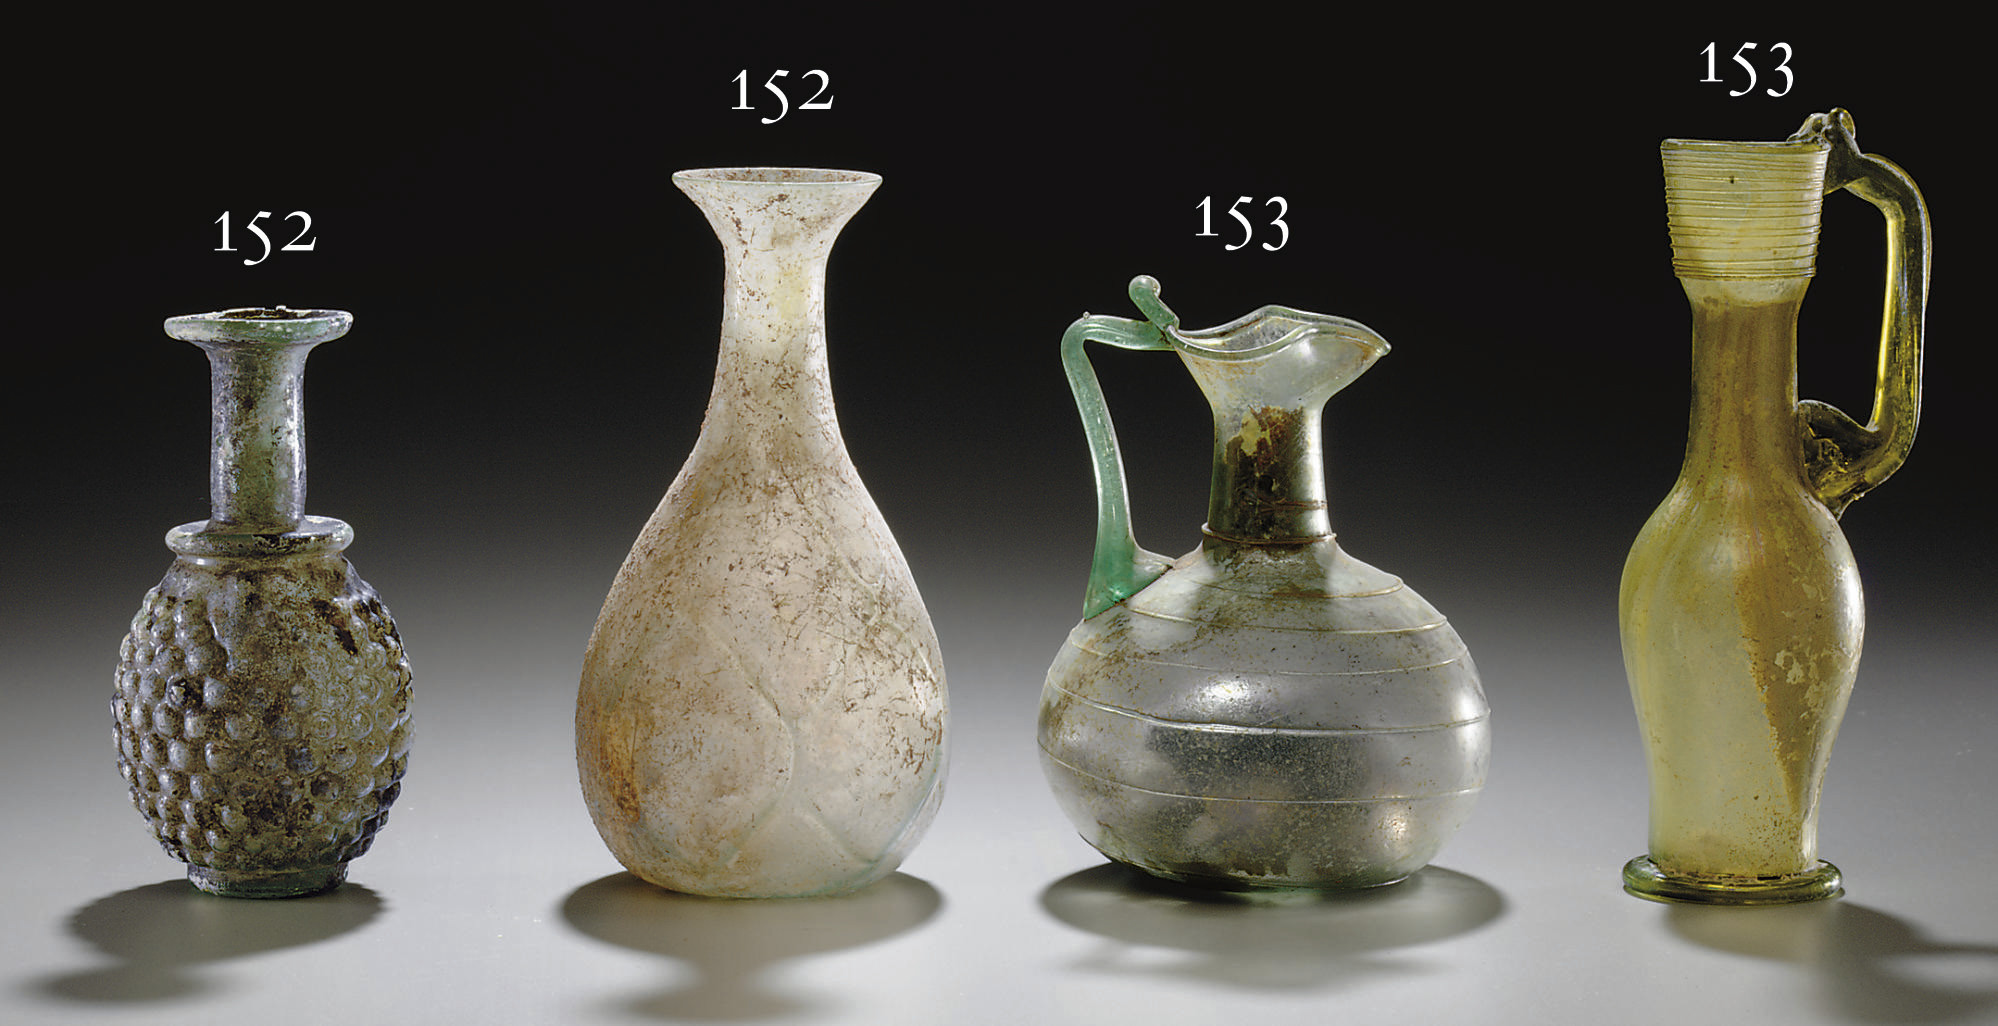 A ROMAN AND A BYZANTINE GLASS